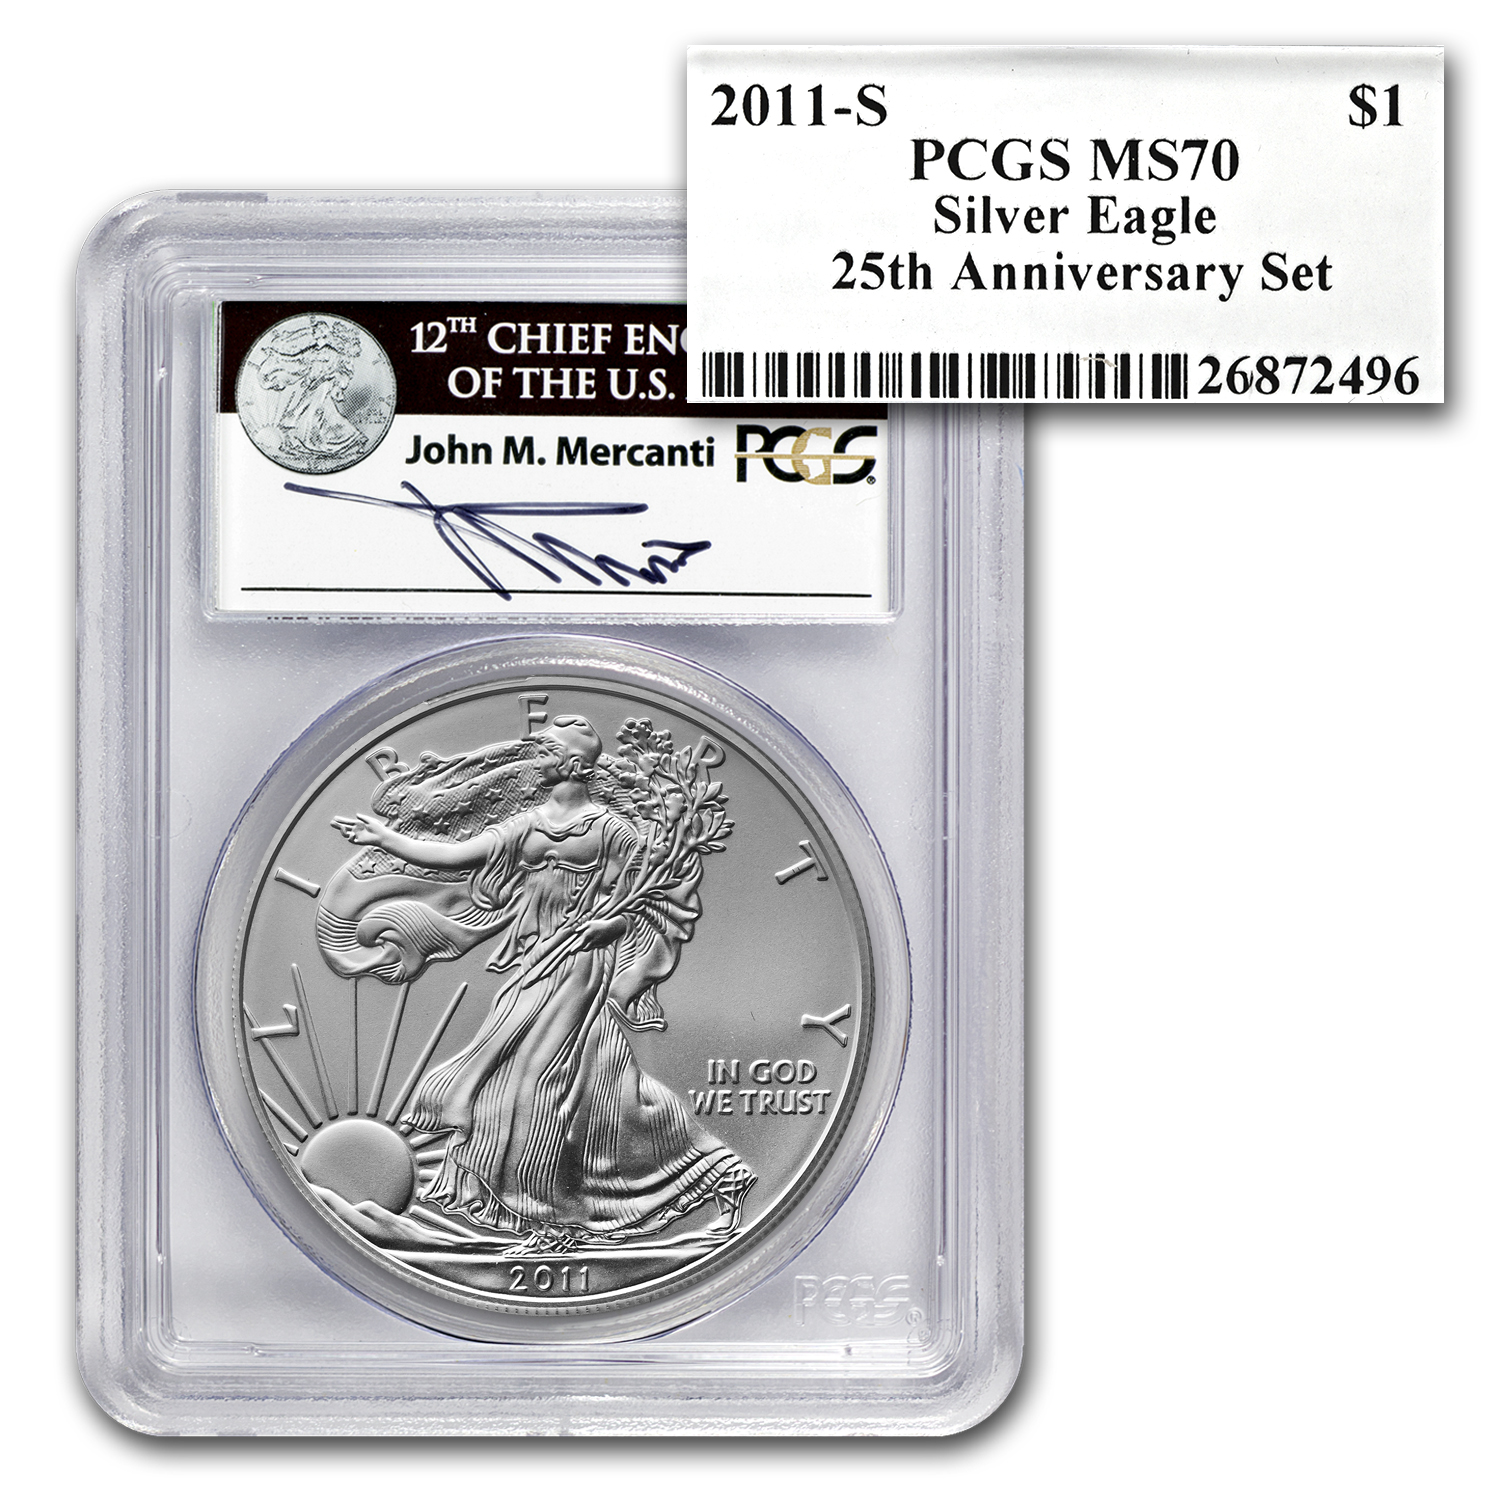 2011 5-Coin Silver Eagle Set MS/PR-70 PCGS (Mercanti, 25th Anniv)